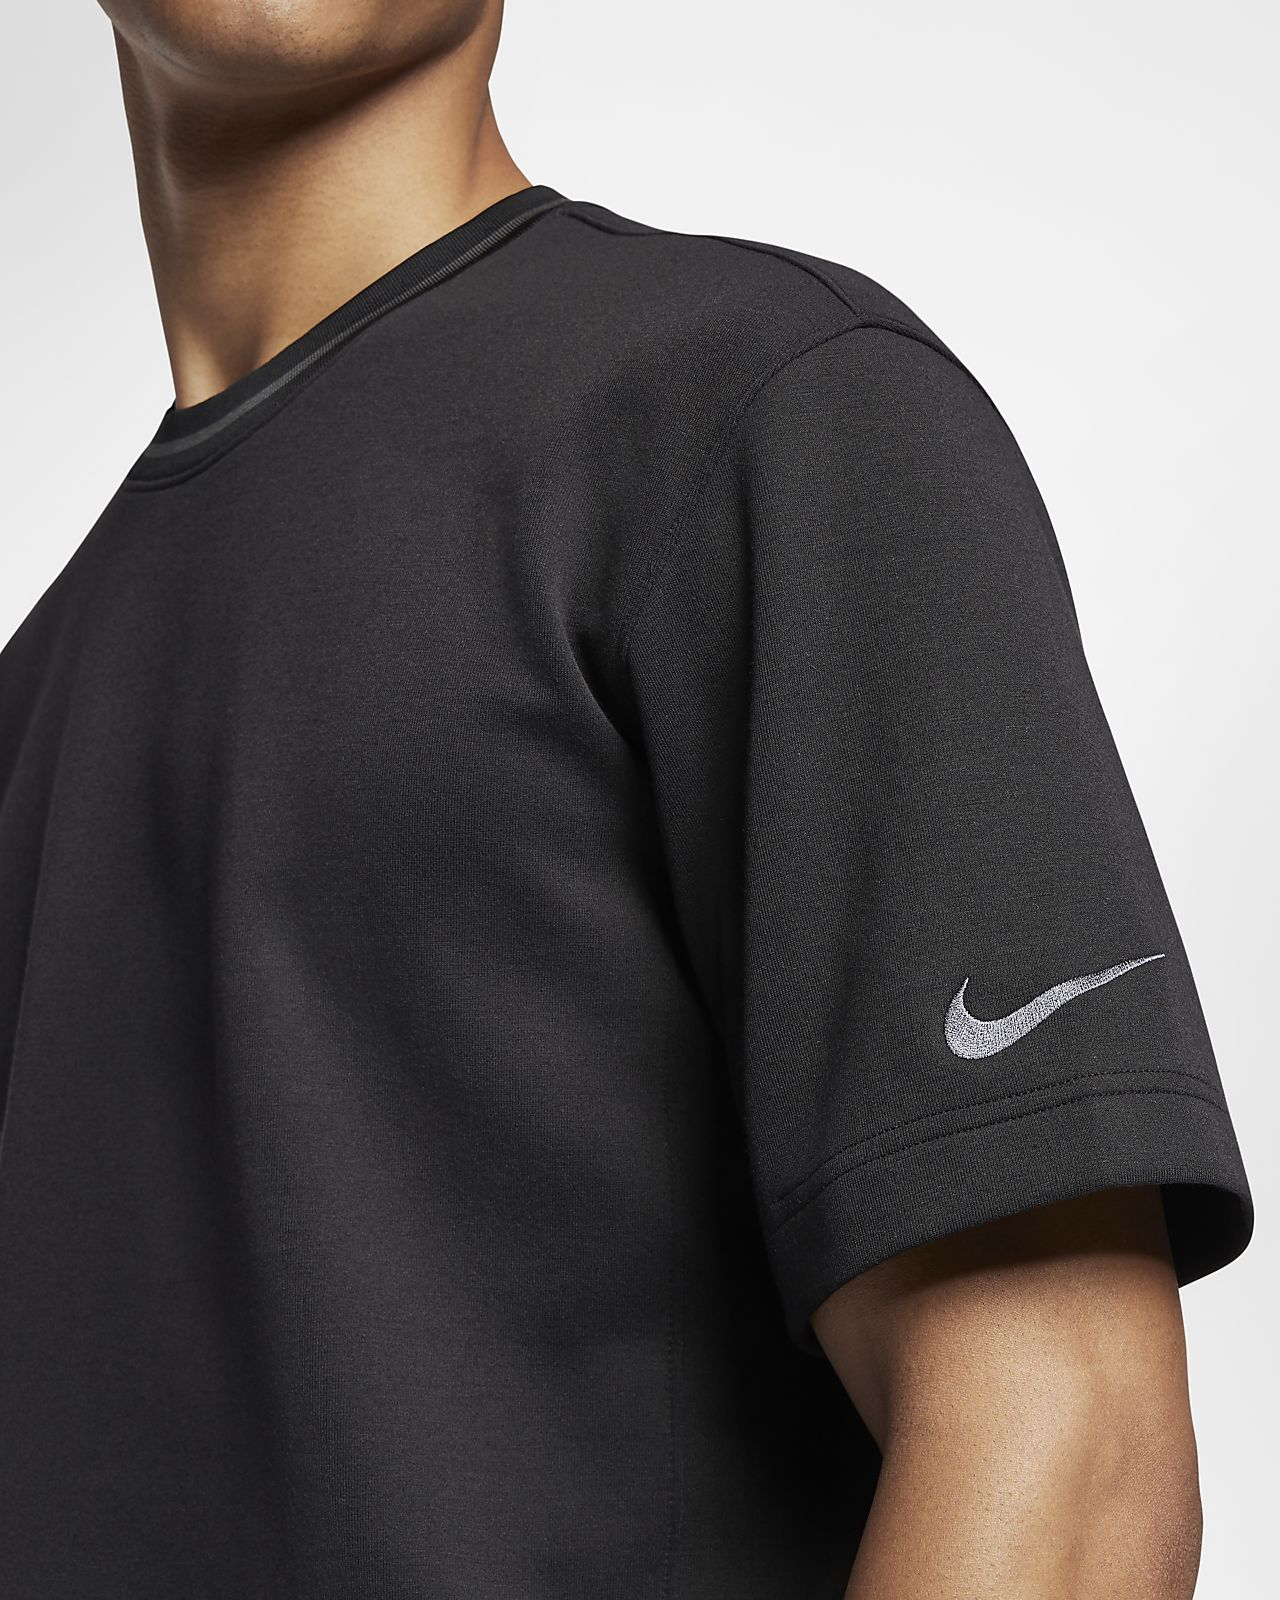 Black Top Short Sleeve  Nike  Tränings T-shirts